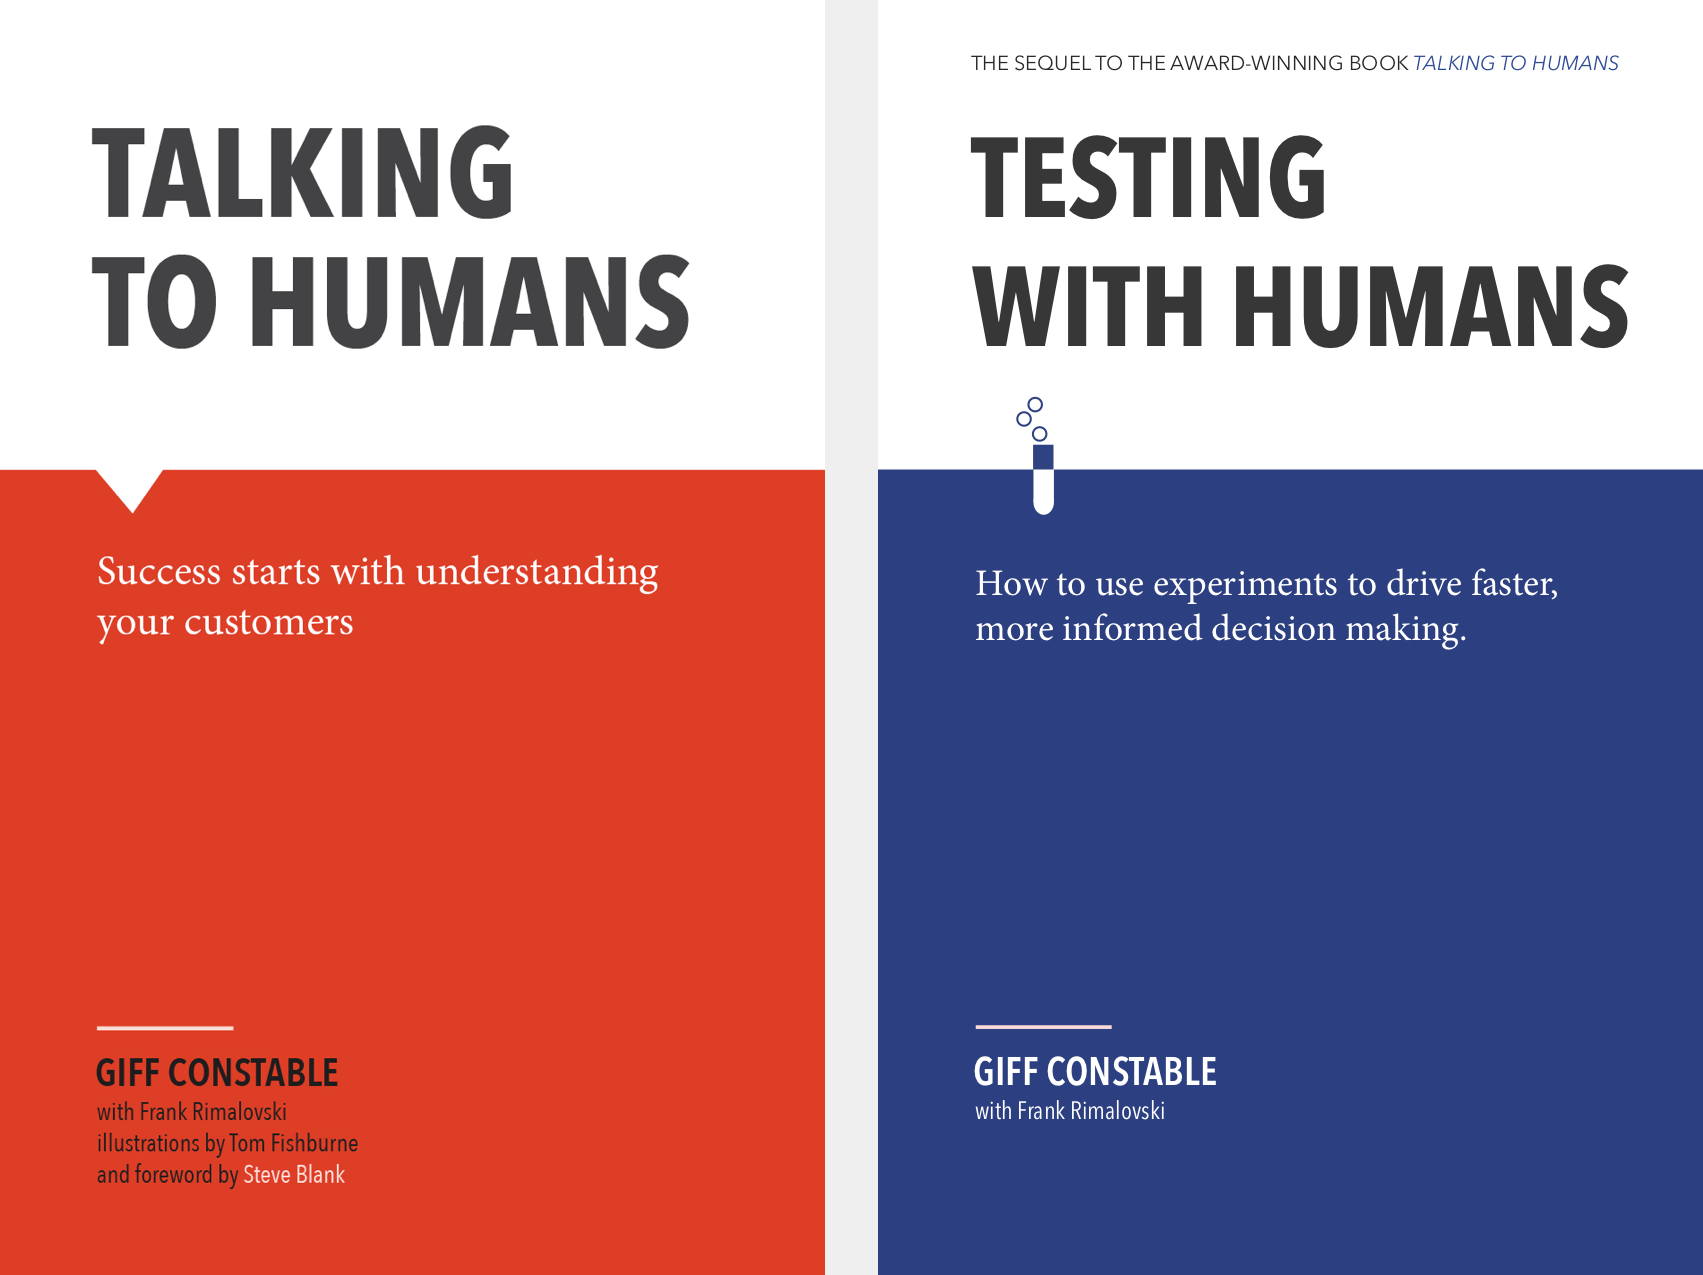 Talking with Humans & Testing with Humans